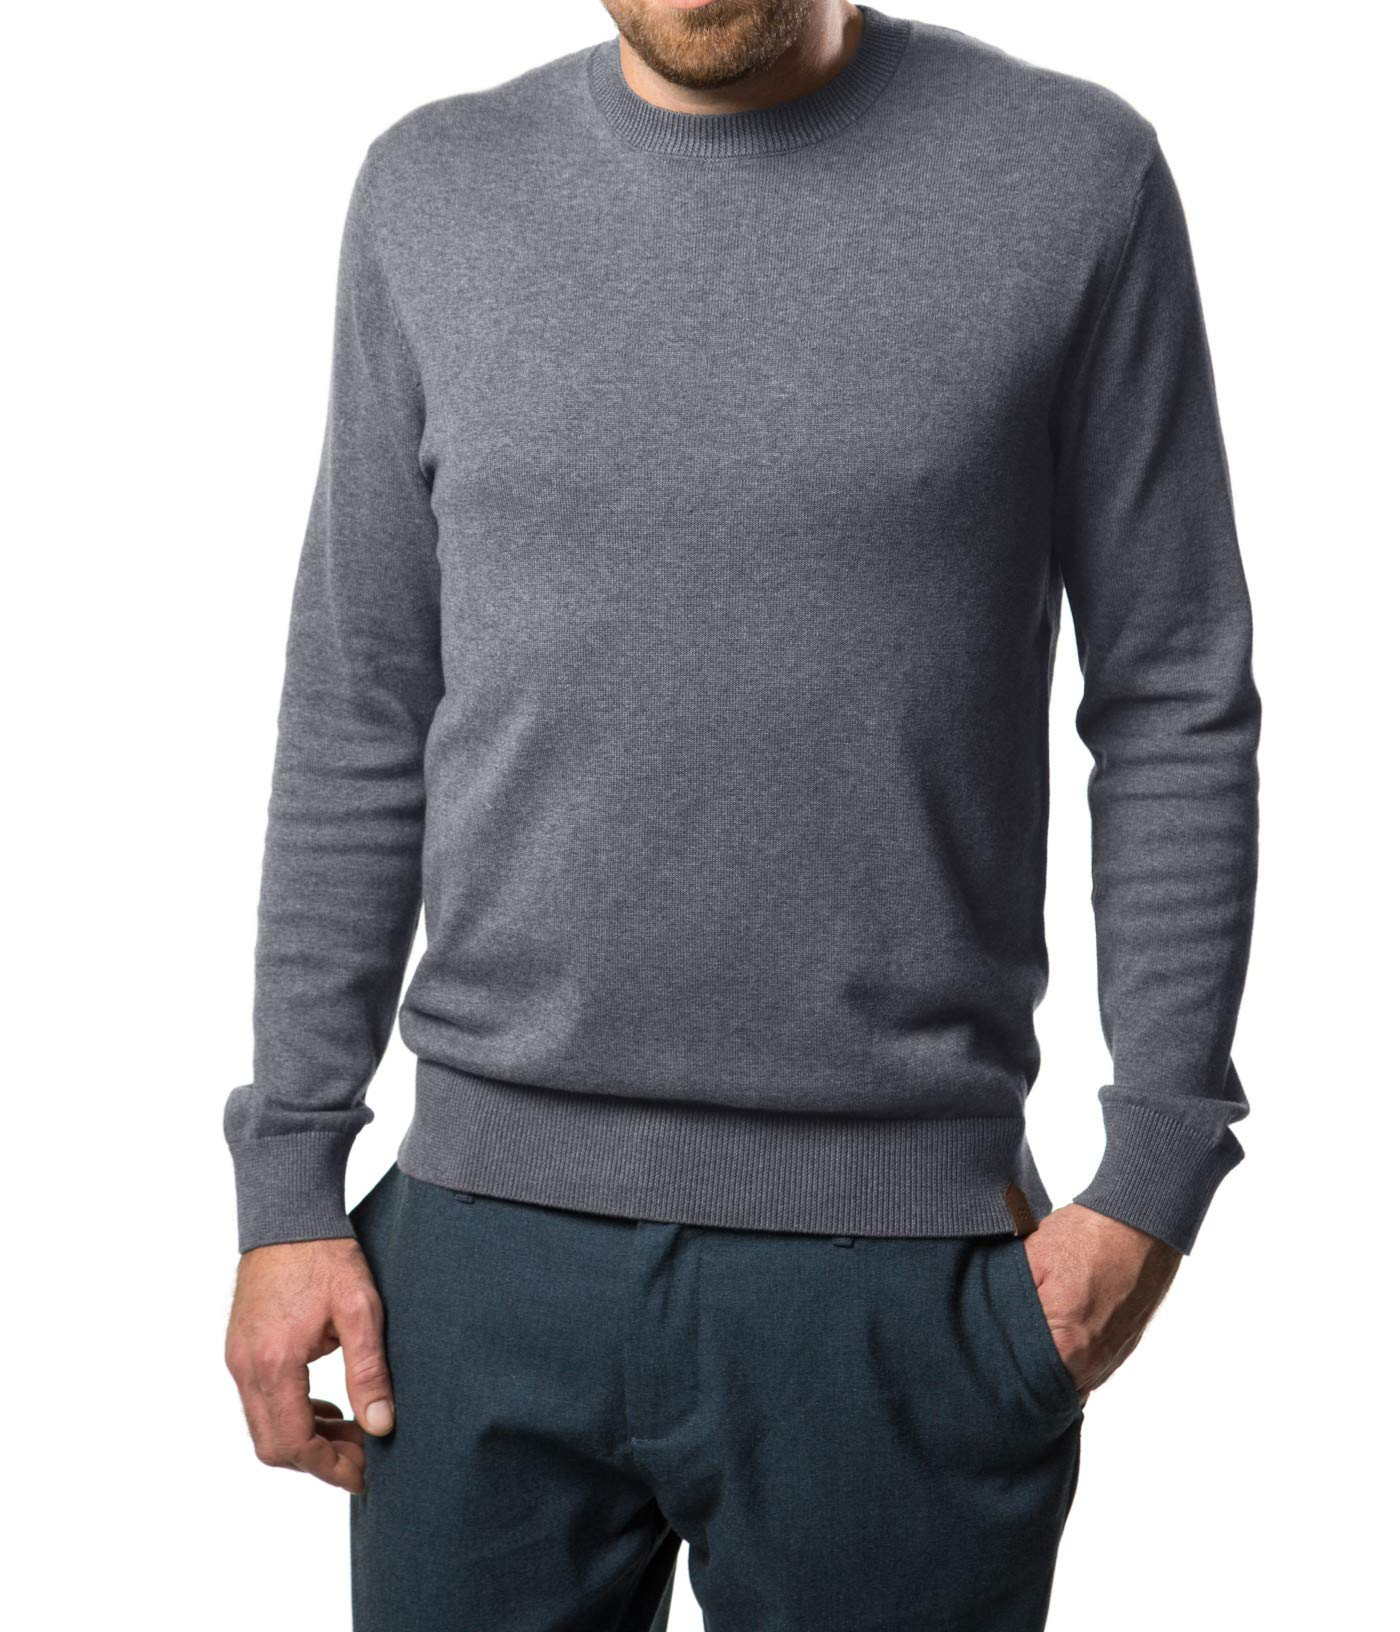 Mio Marino Cotton Sweaters For Men - Lightweight Crewneck Men's Pullover, Enclosed in an Elegant Gift Box - Charcoal Grey - Medium